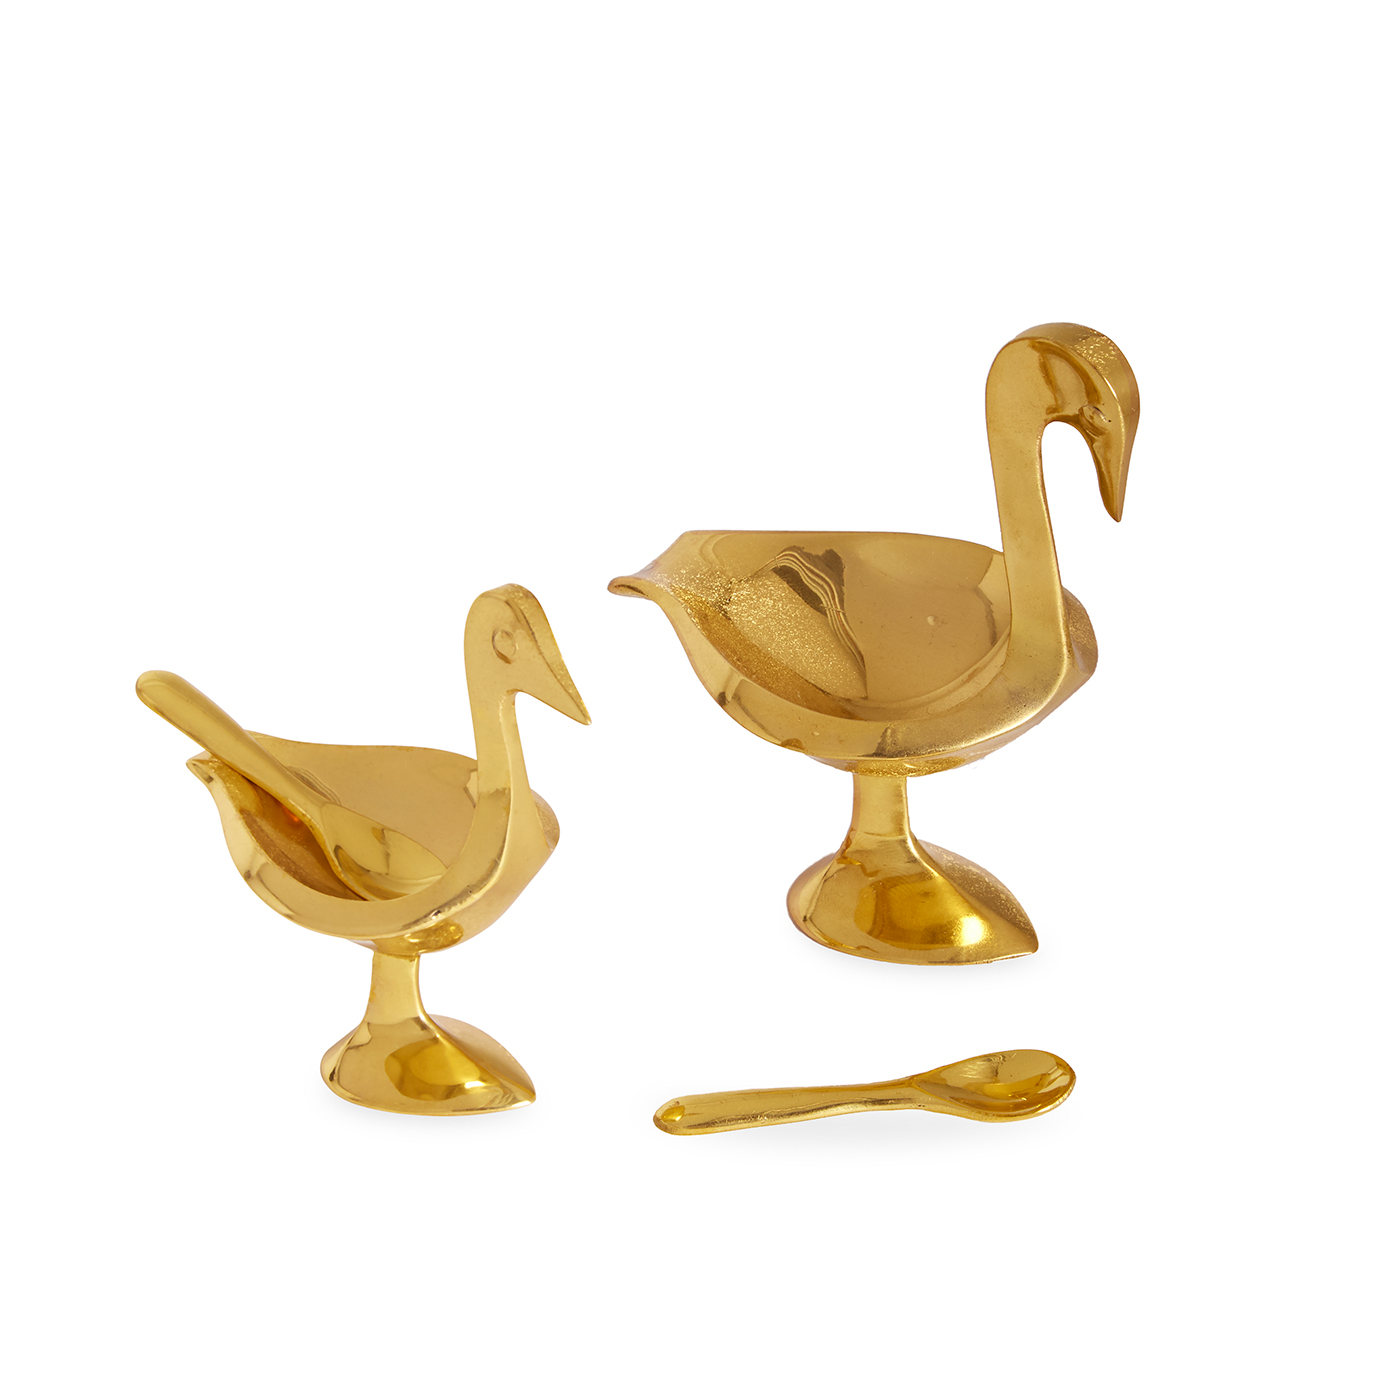 BRASS BIRD SALT CELLARS - $98   These brass bird salt cellars are the perfect way to add a little whimsy to the holiday table.